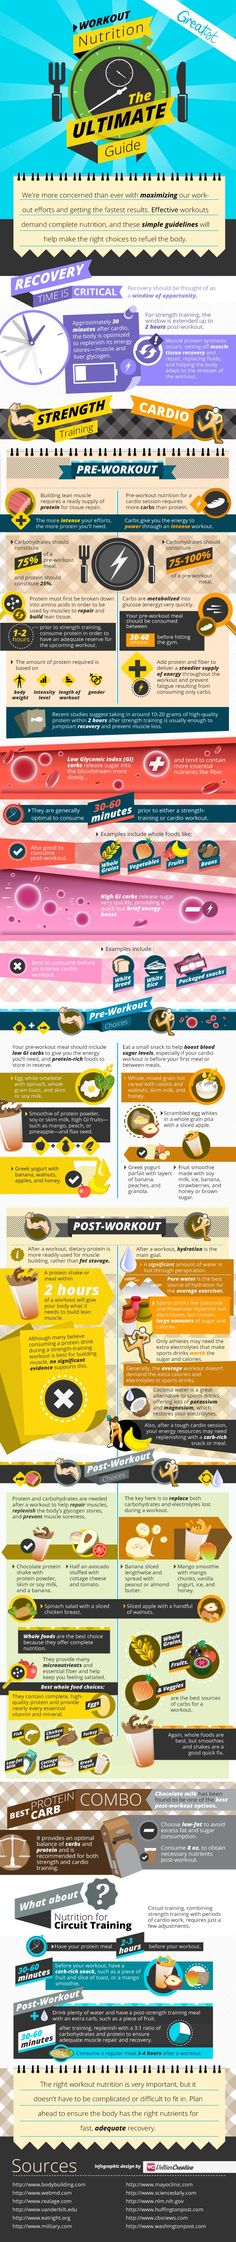 Intense or average workout needs regular and adequate fueling of the body engine. Either you follow a strength training or a cardio program here you'll find the ultimate nutrition guide with food suggestions for keeping your energy and stamina while protecting your body and maximizing results.